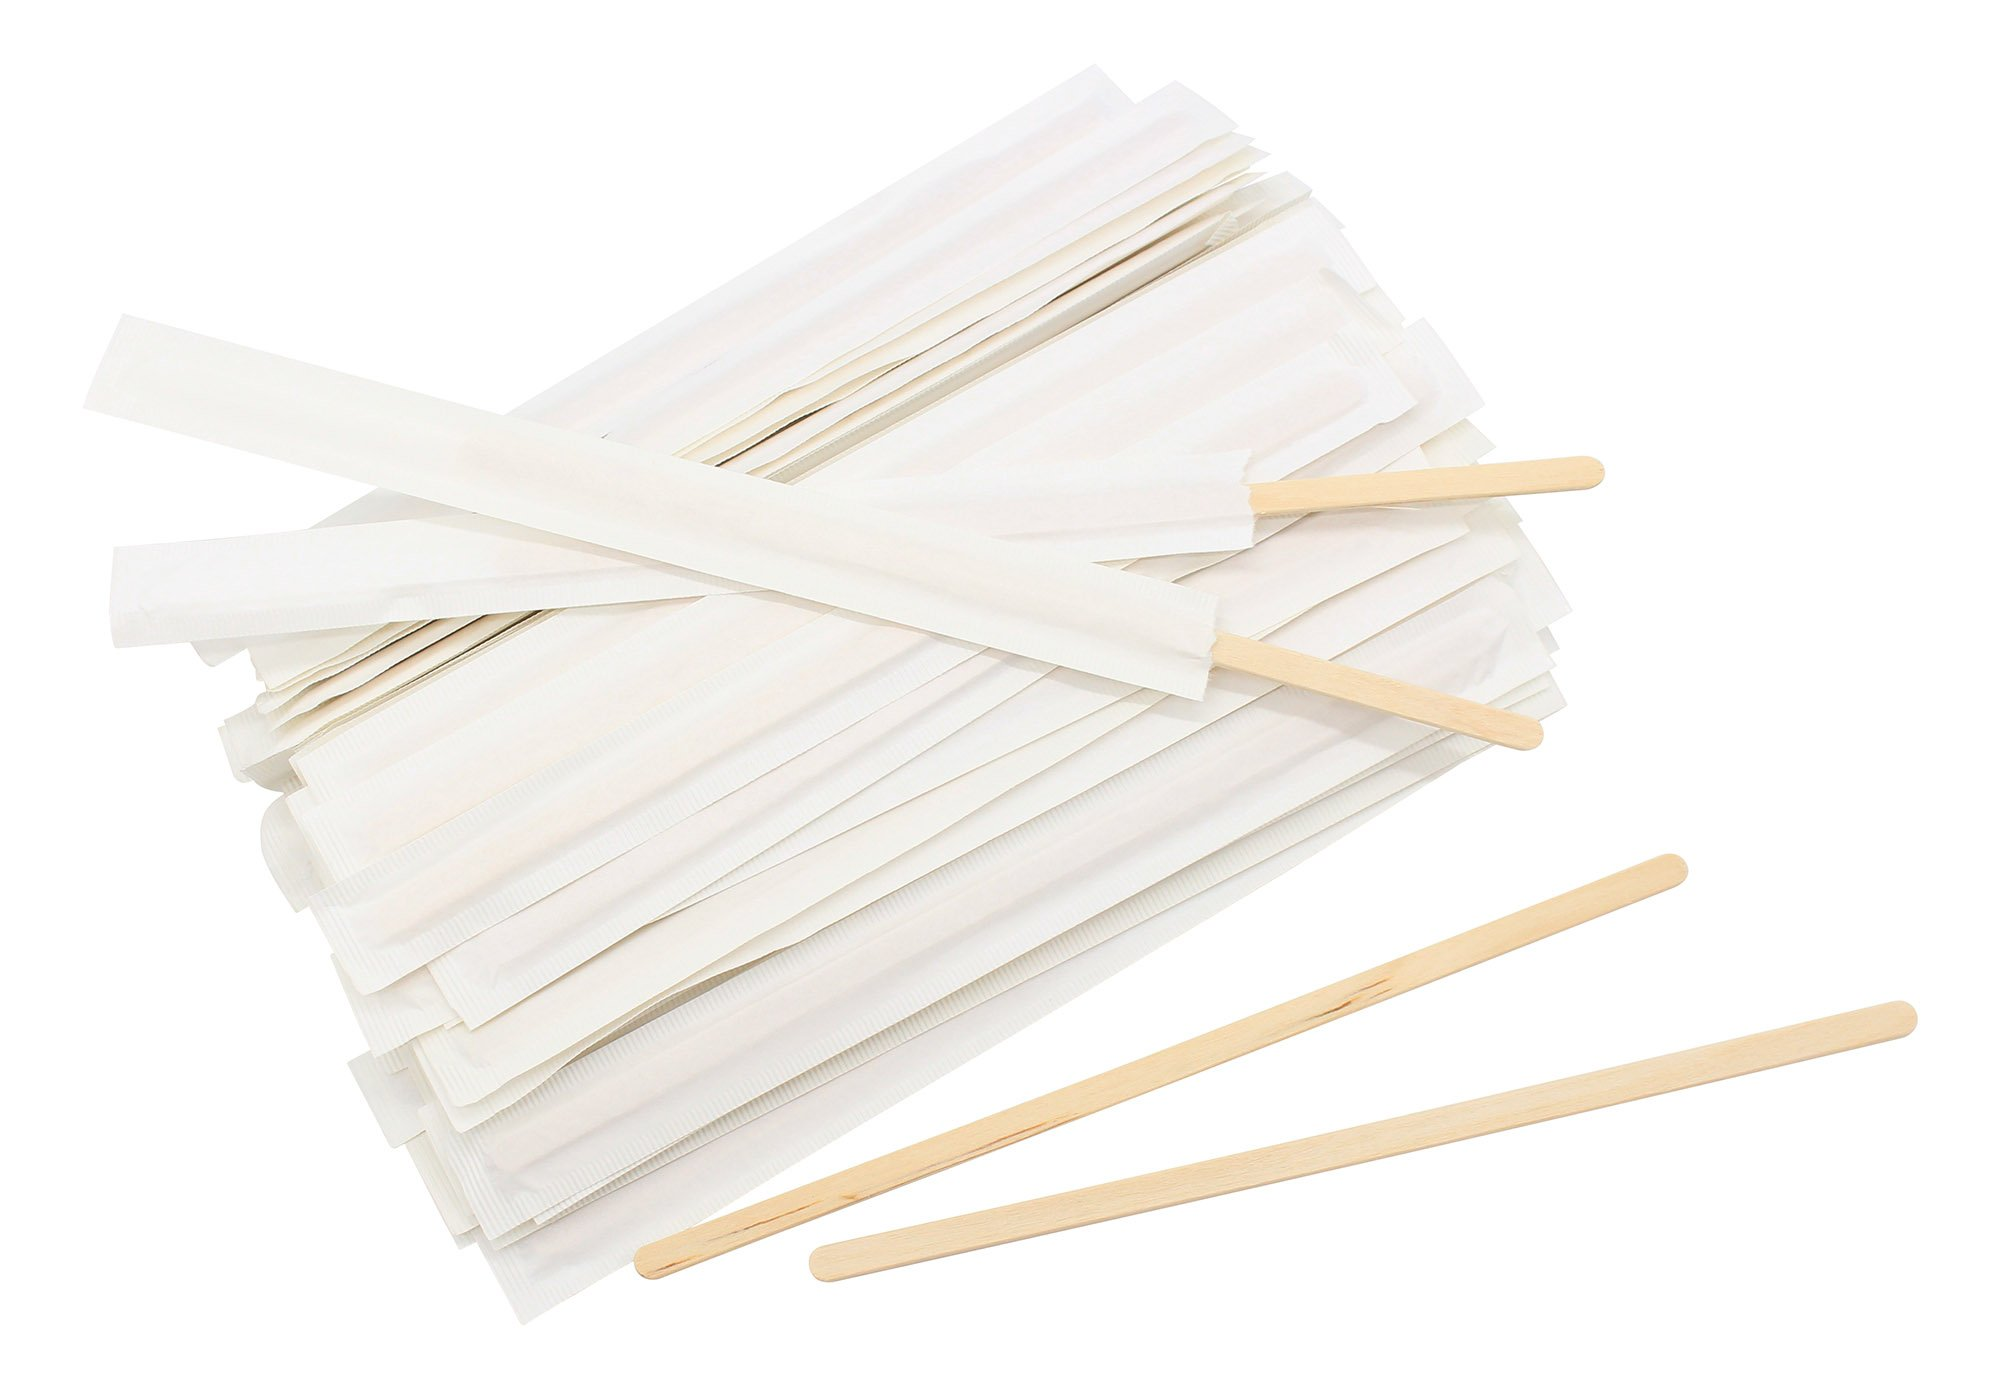 Disposable Paper Wrapped Wooden Coffee Stir Sticks Wood Tea Beverage Stirrers 7.5 Inch 500 Pcs